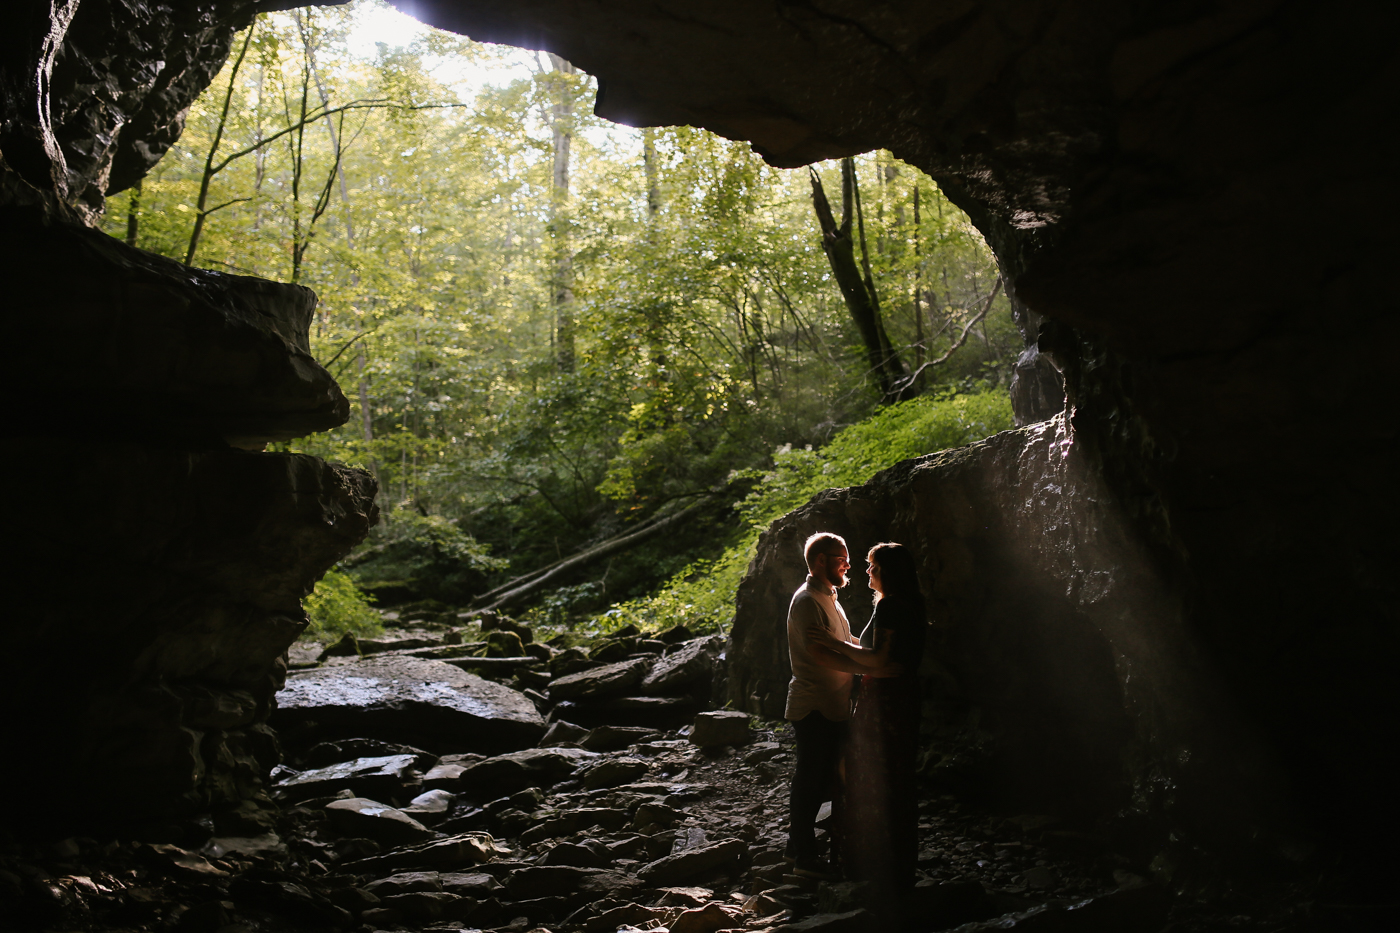 Eastern-Kentucky-Outdoors-Cave-Engagement-Photography-14.jpg